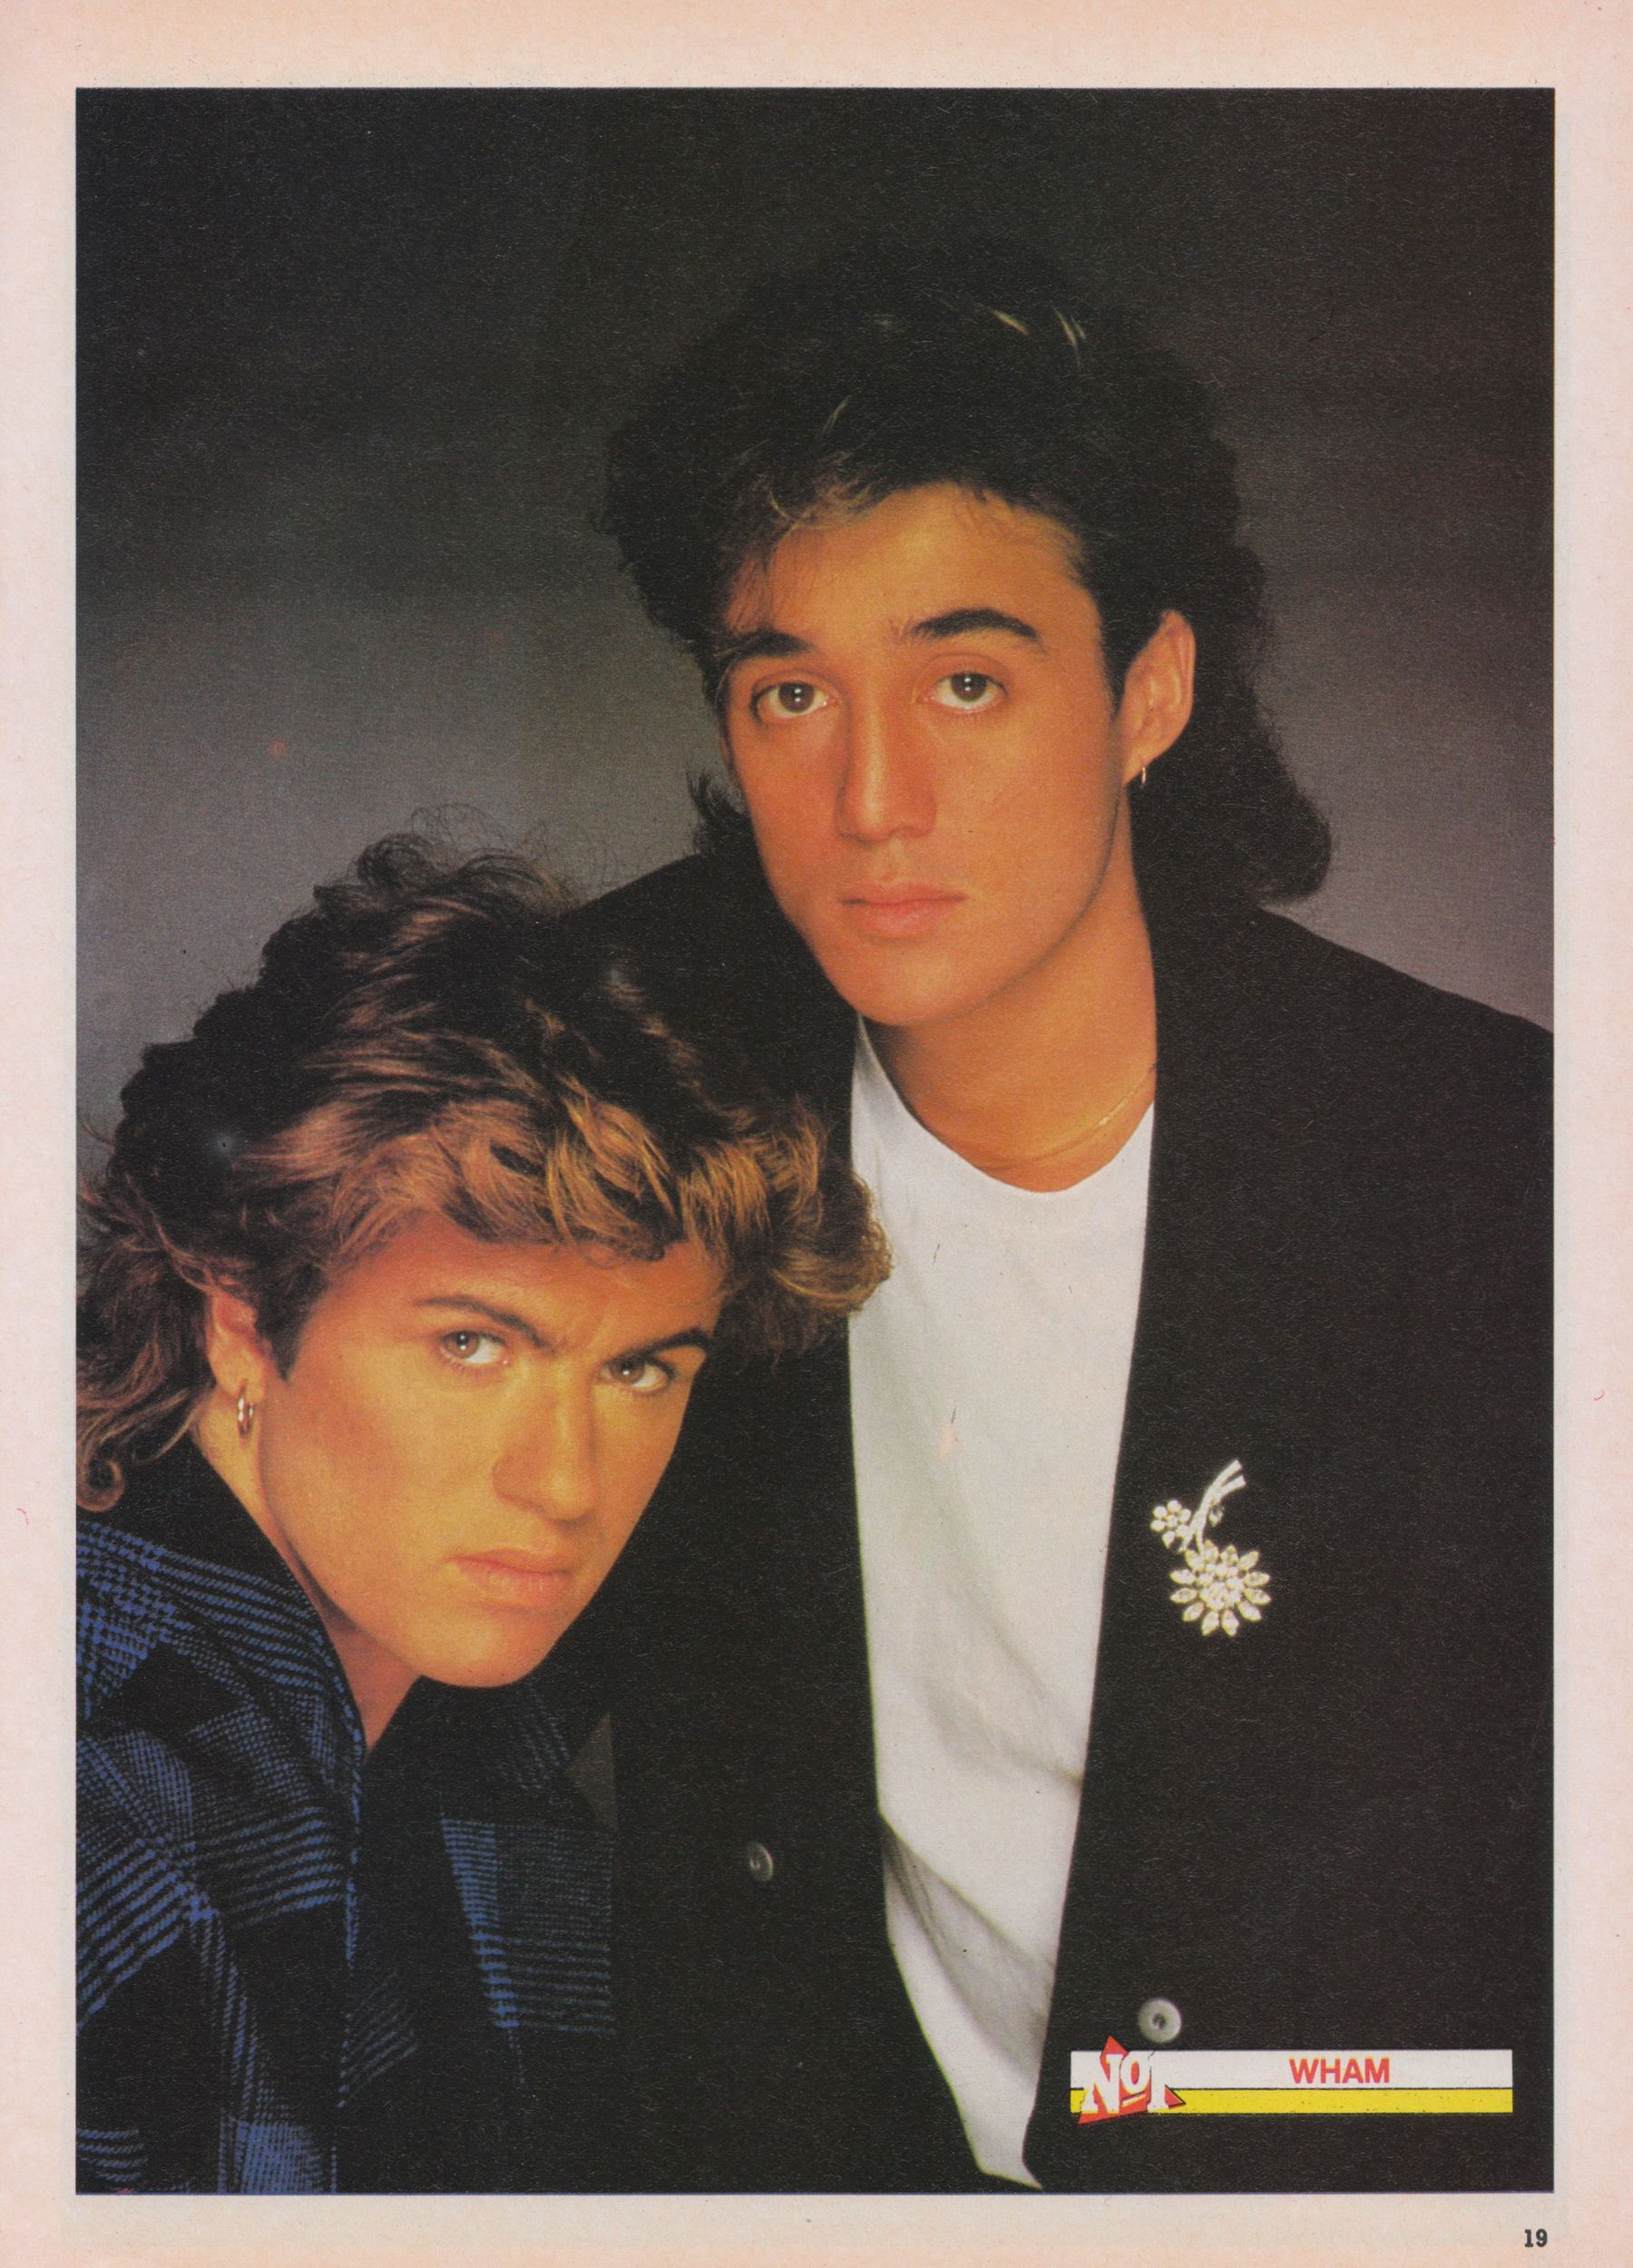 Wham Solid Bond interview, 1985